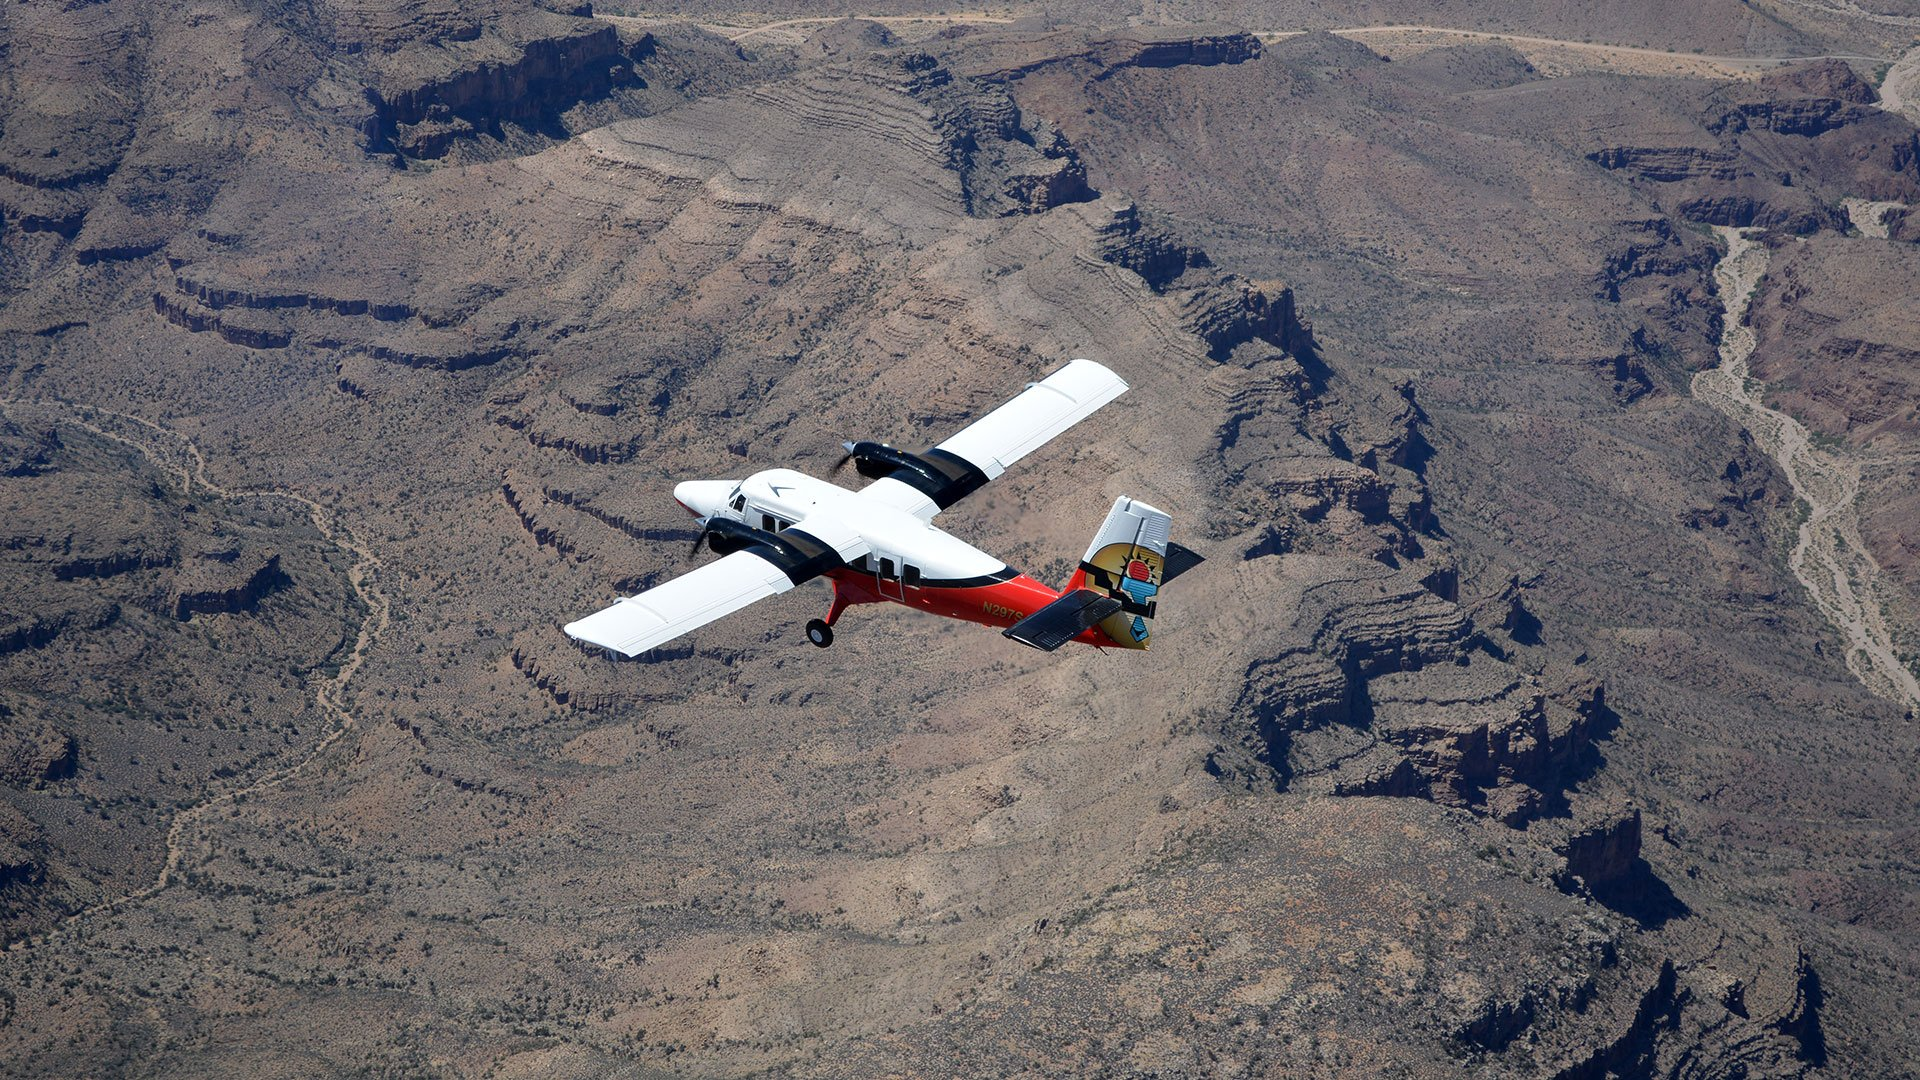 A Twin Otter plane during its flight over the Grand Canyon